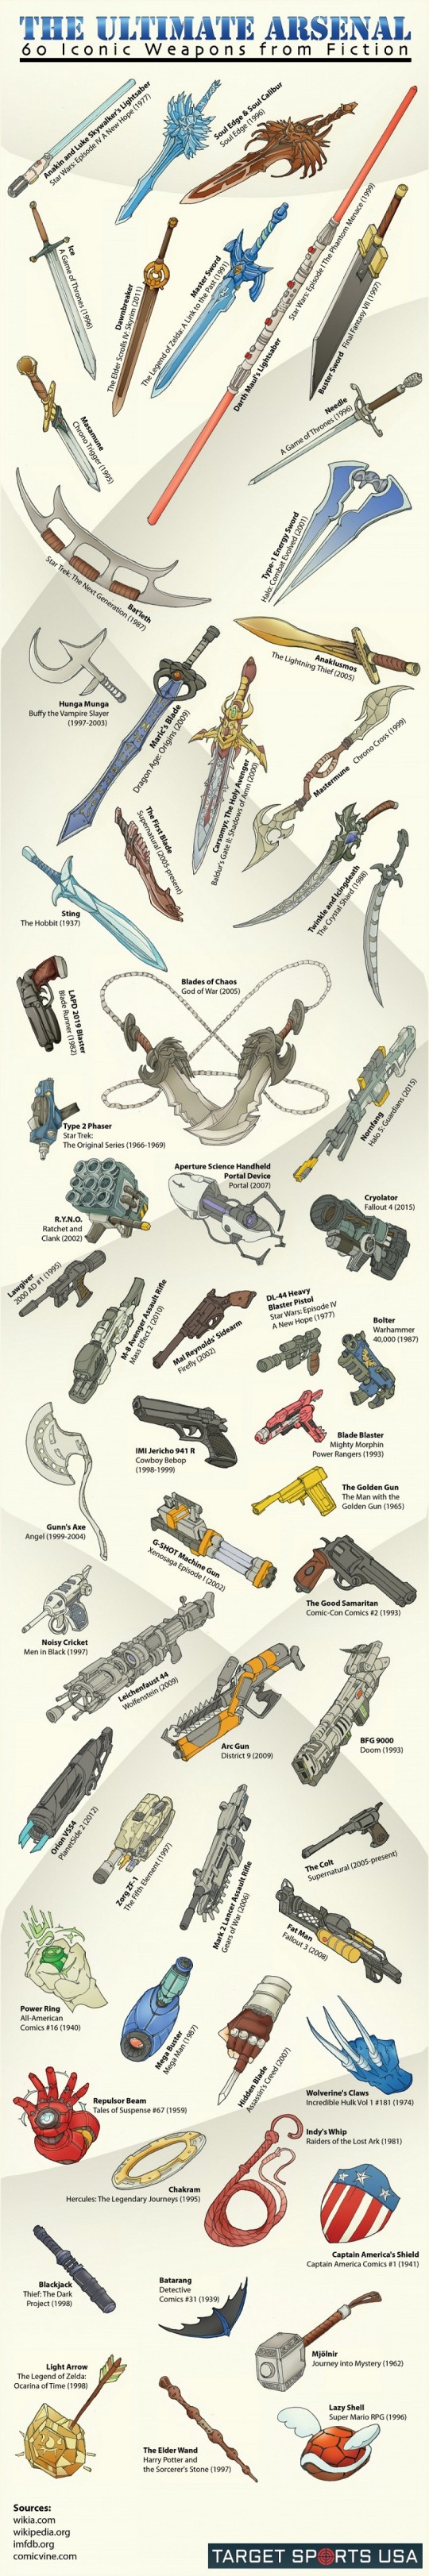 60 iconic weapons from fiction #infographic